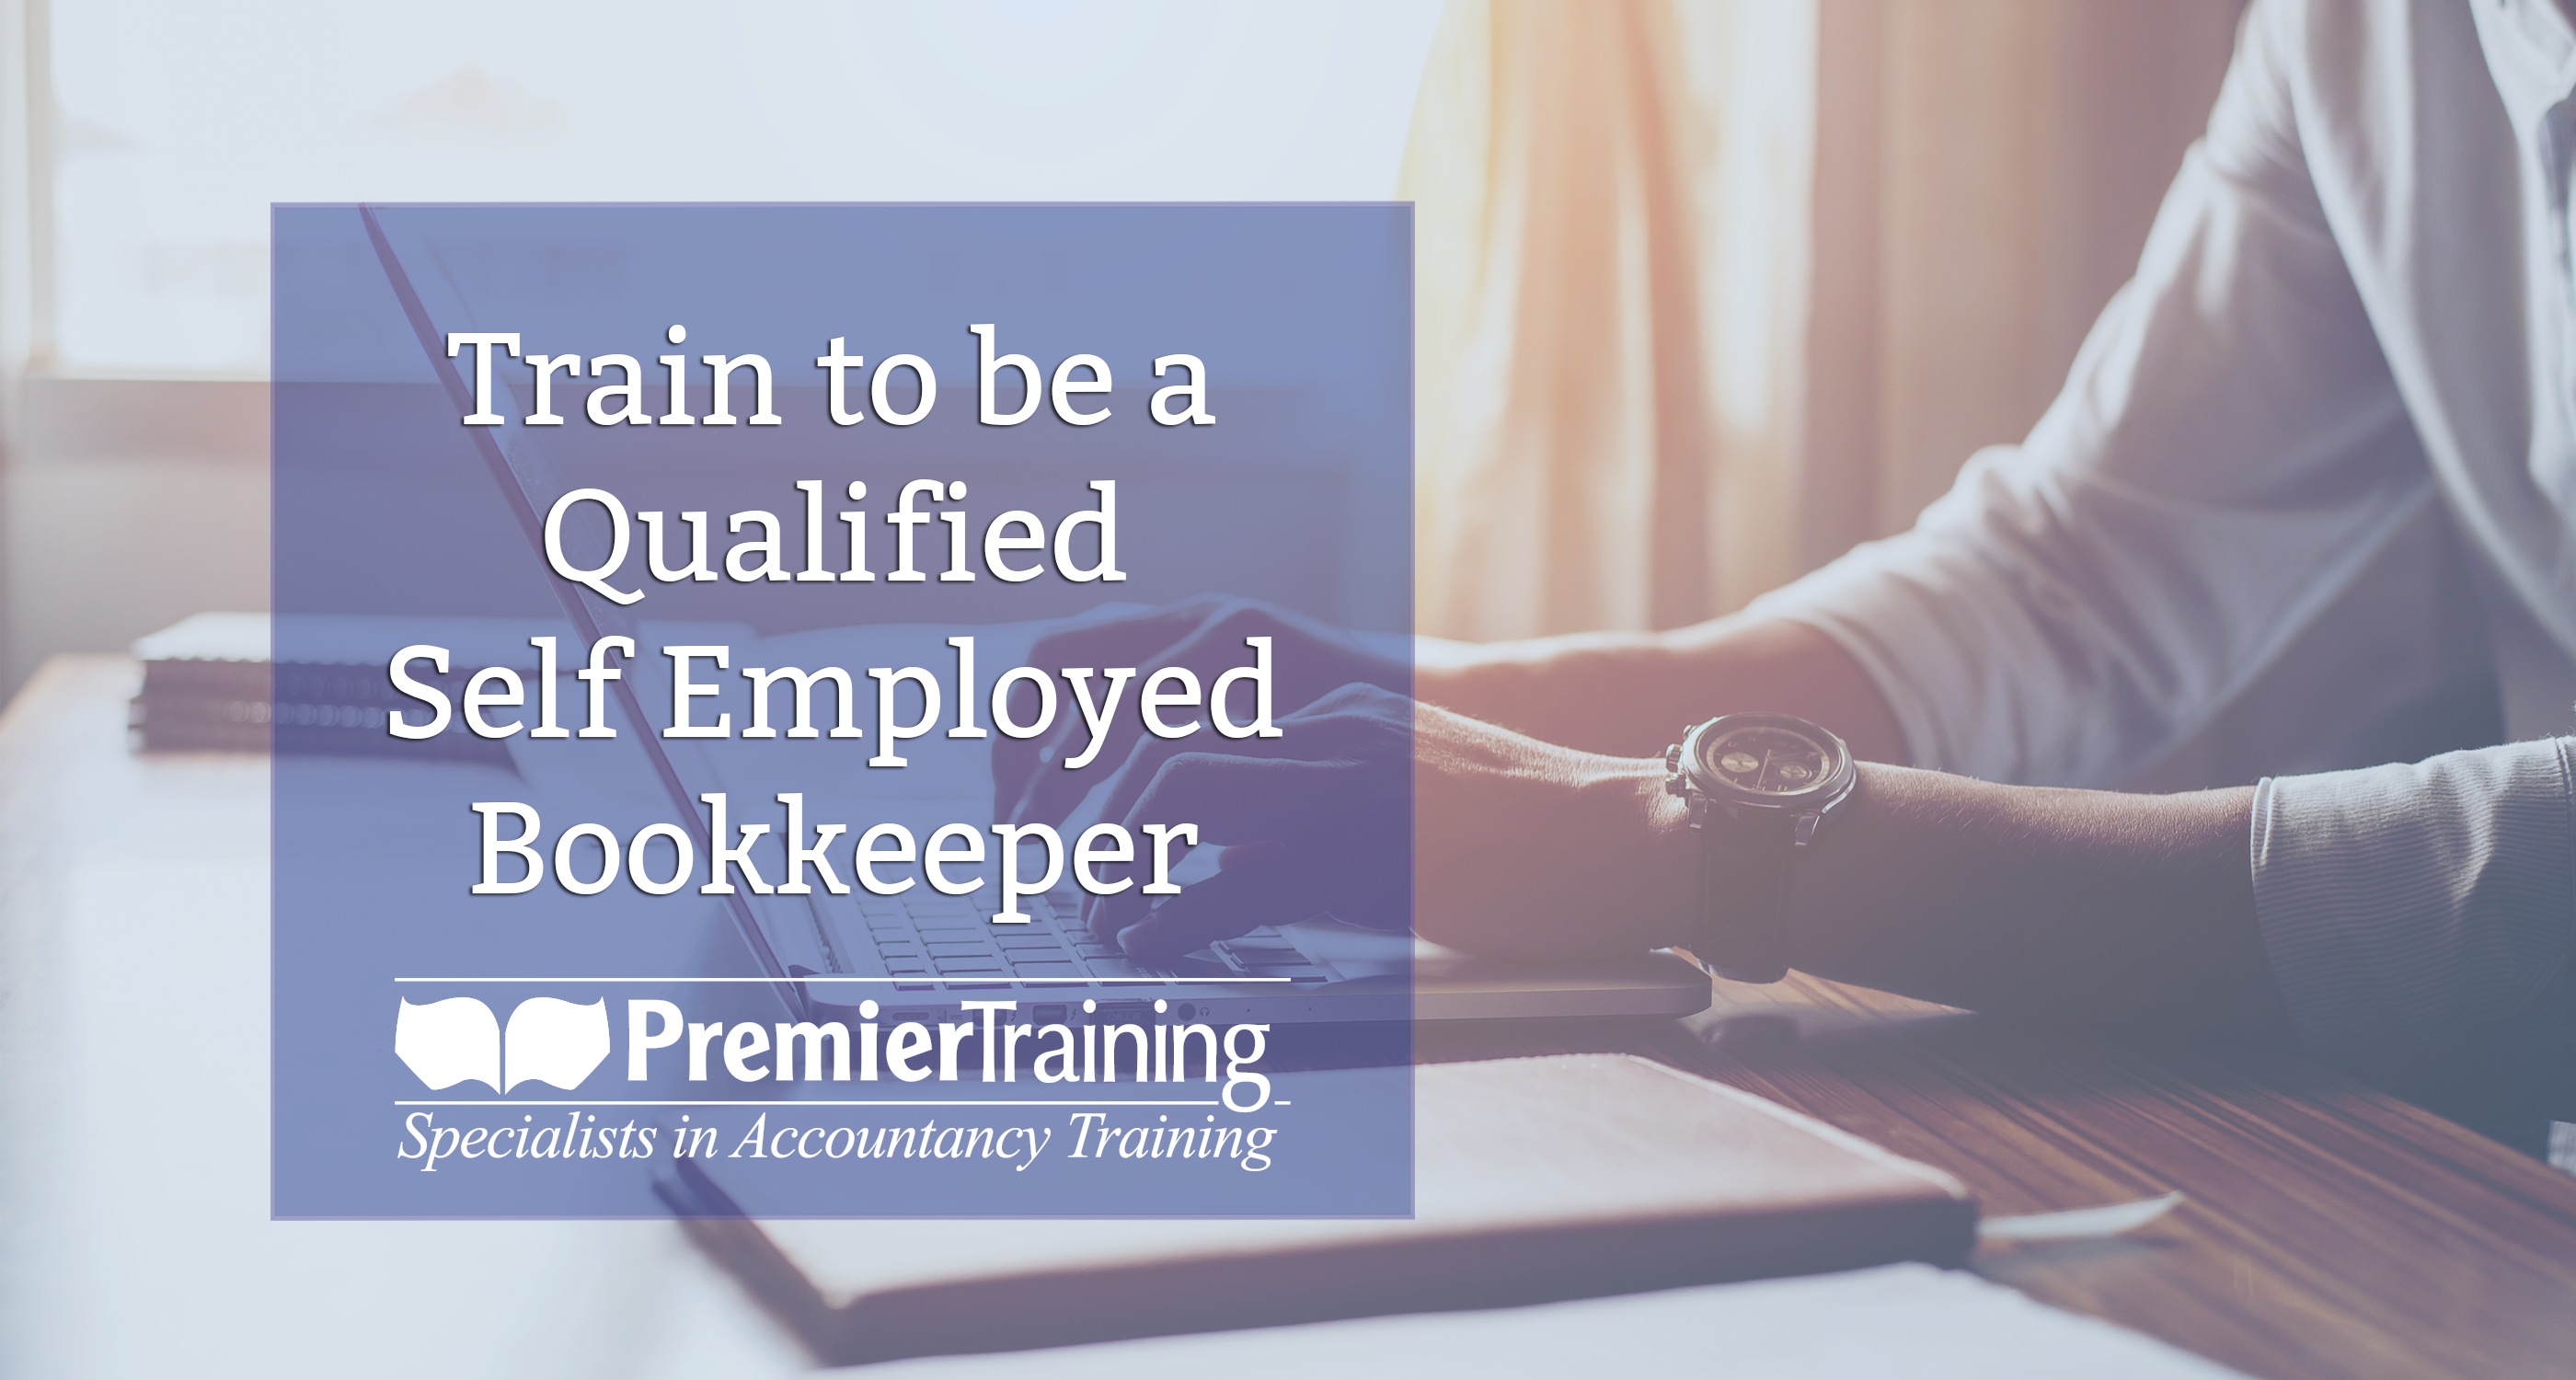 Train to be a bookkeeper